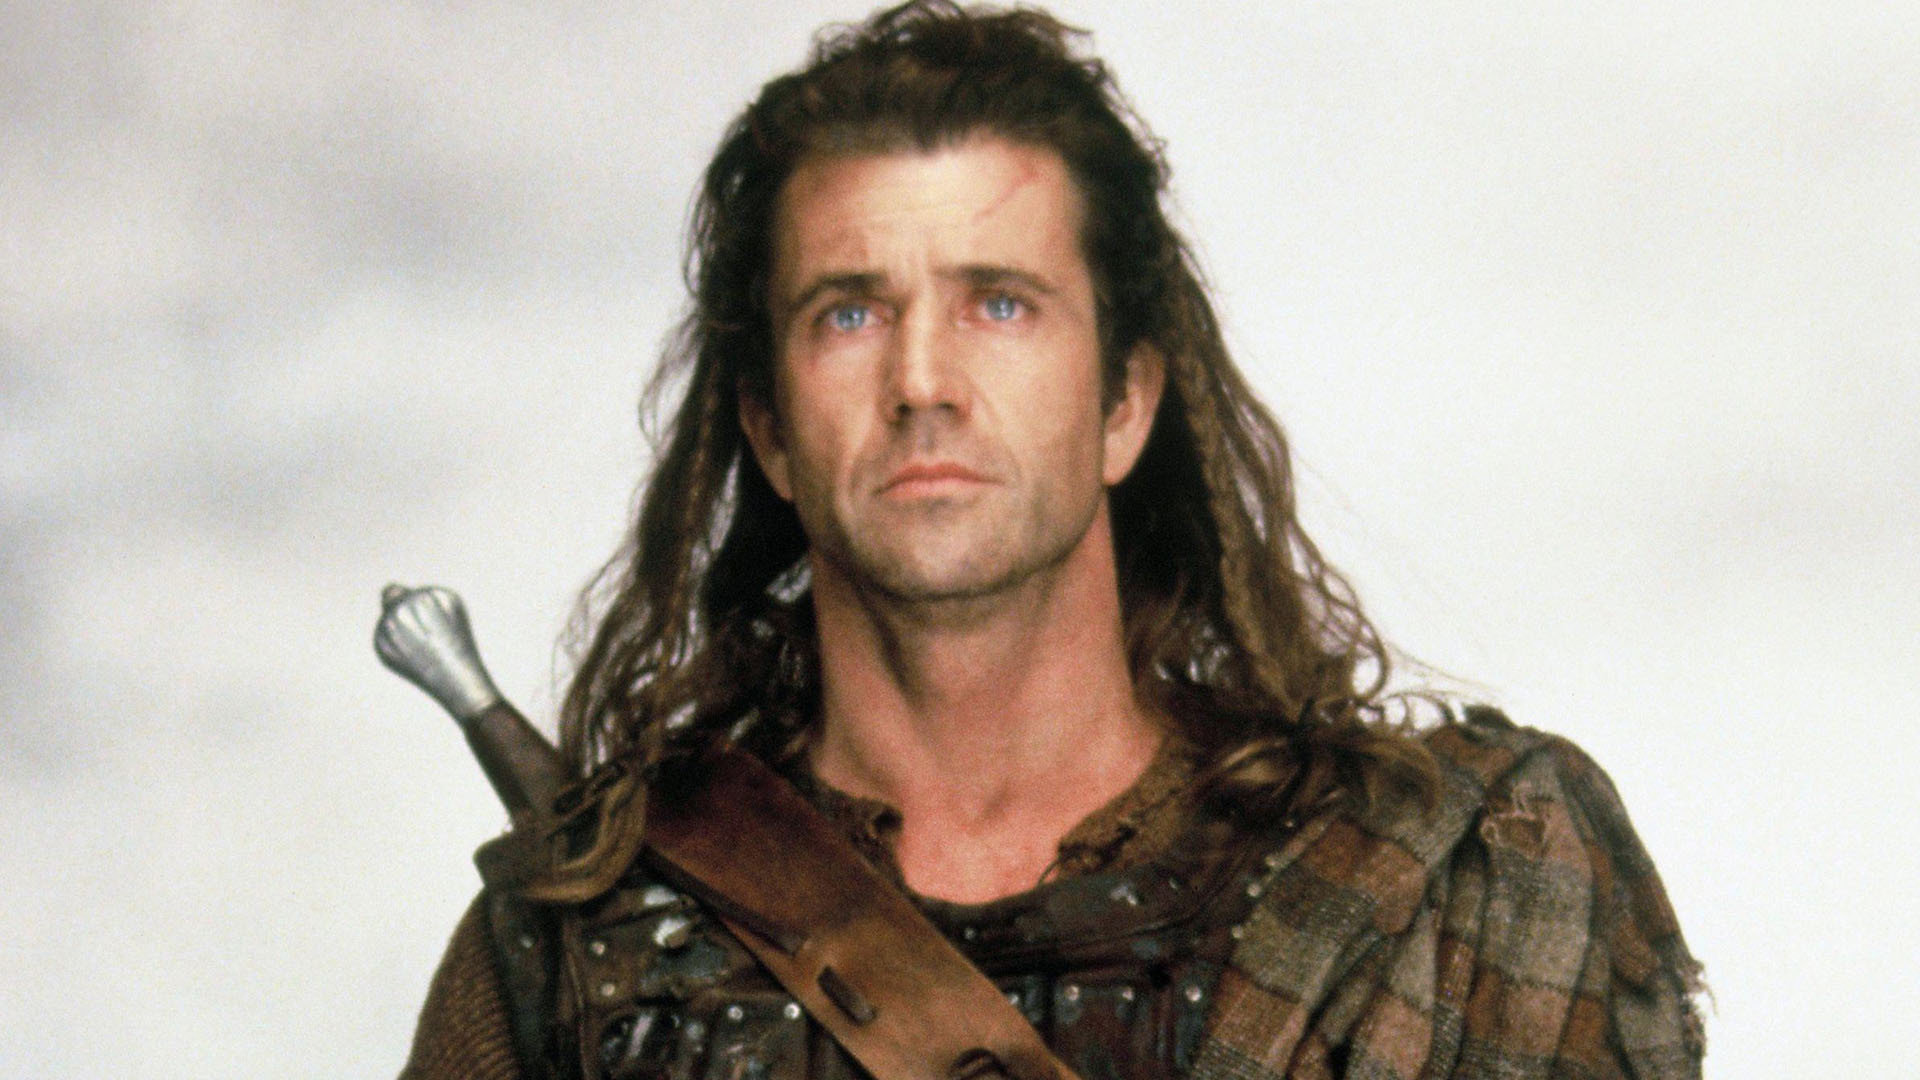 Braveheart images Wallpaper HD wallpaper and background ...